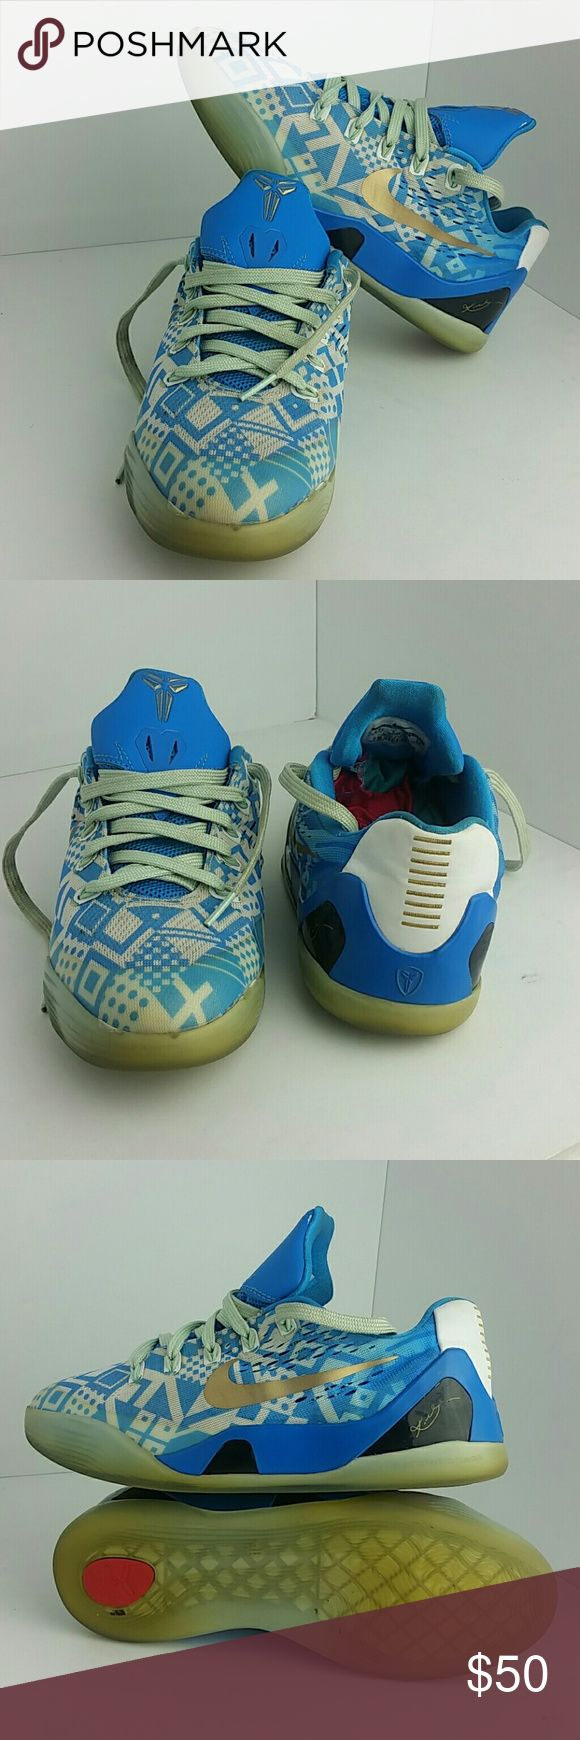 NIKE KOBE 9 IX WOMEN/YOUTH SHOES VERY CLEAN INSIDE-OUT   THIS IS A YOUTH SIZE 5.5Y WHICH IS WOMEN SIZE 7  SKE # AB NIKE  Shoes Athletic Shoes